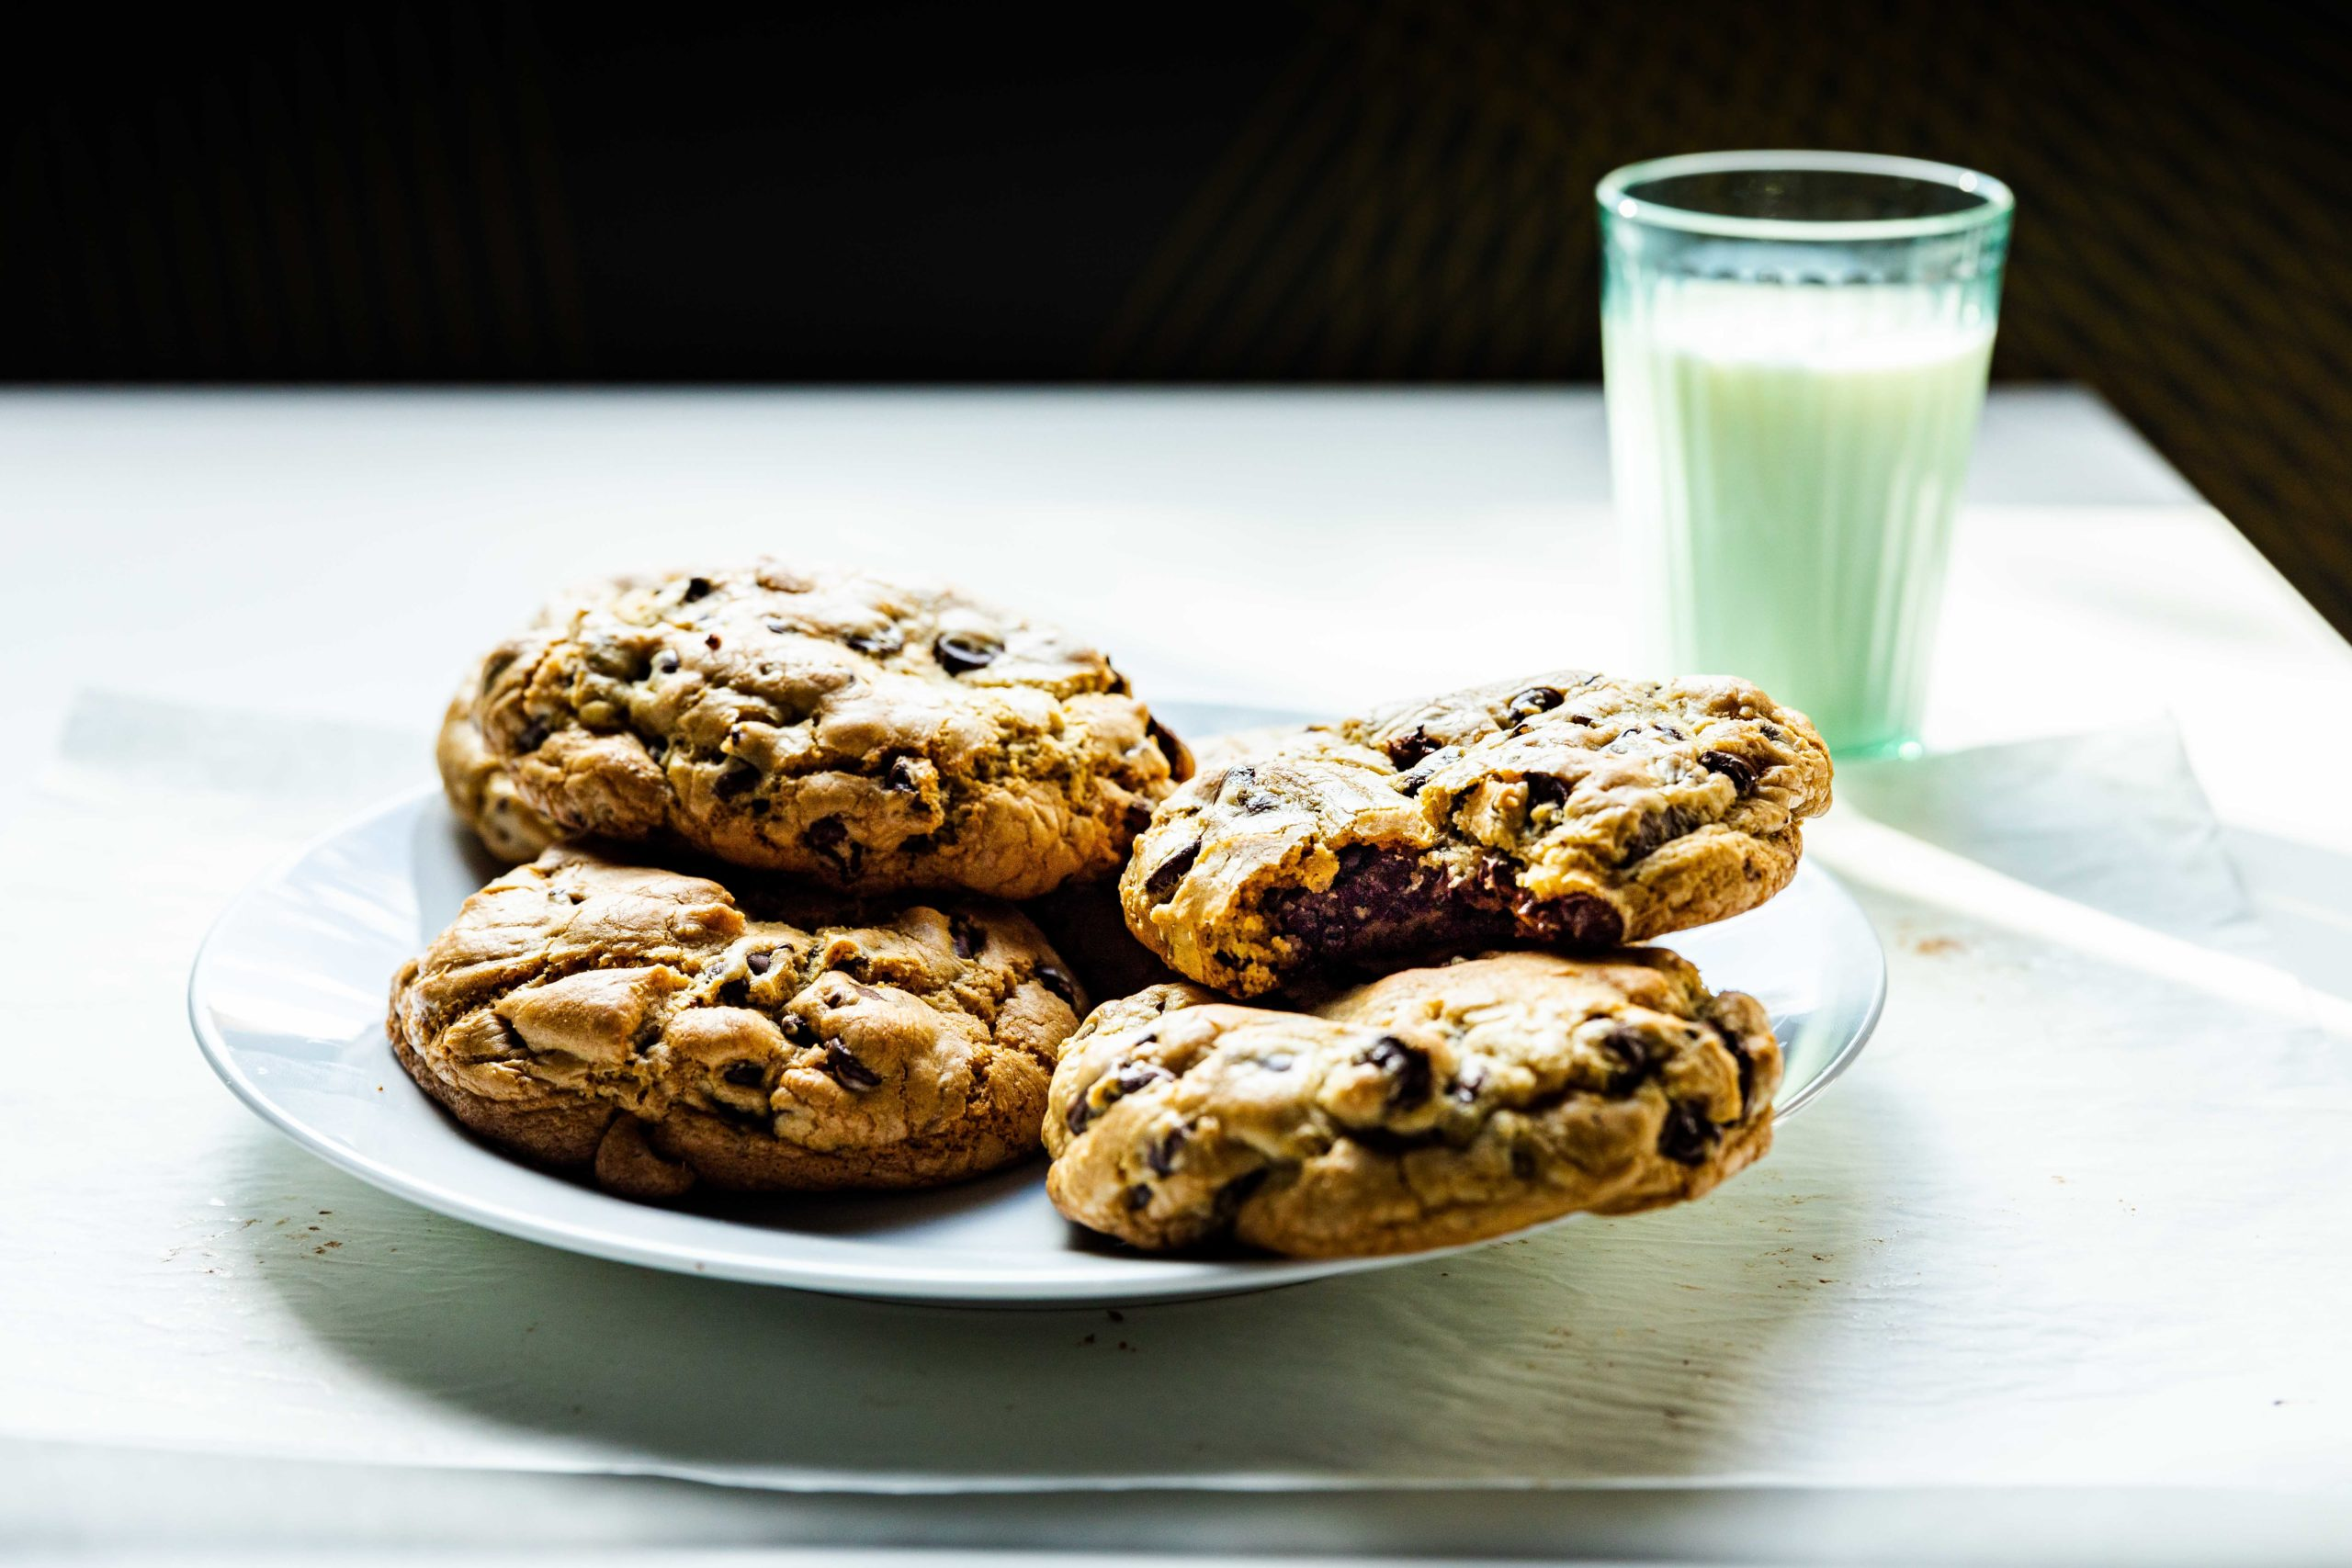 Warm chocolate chip cookies with milk